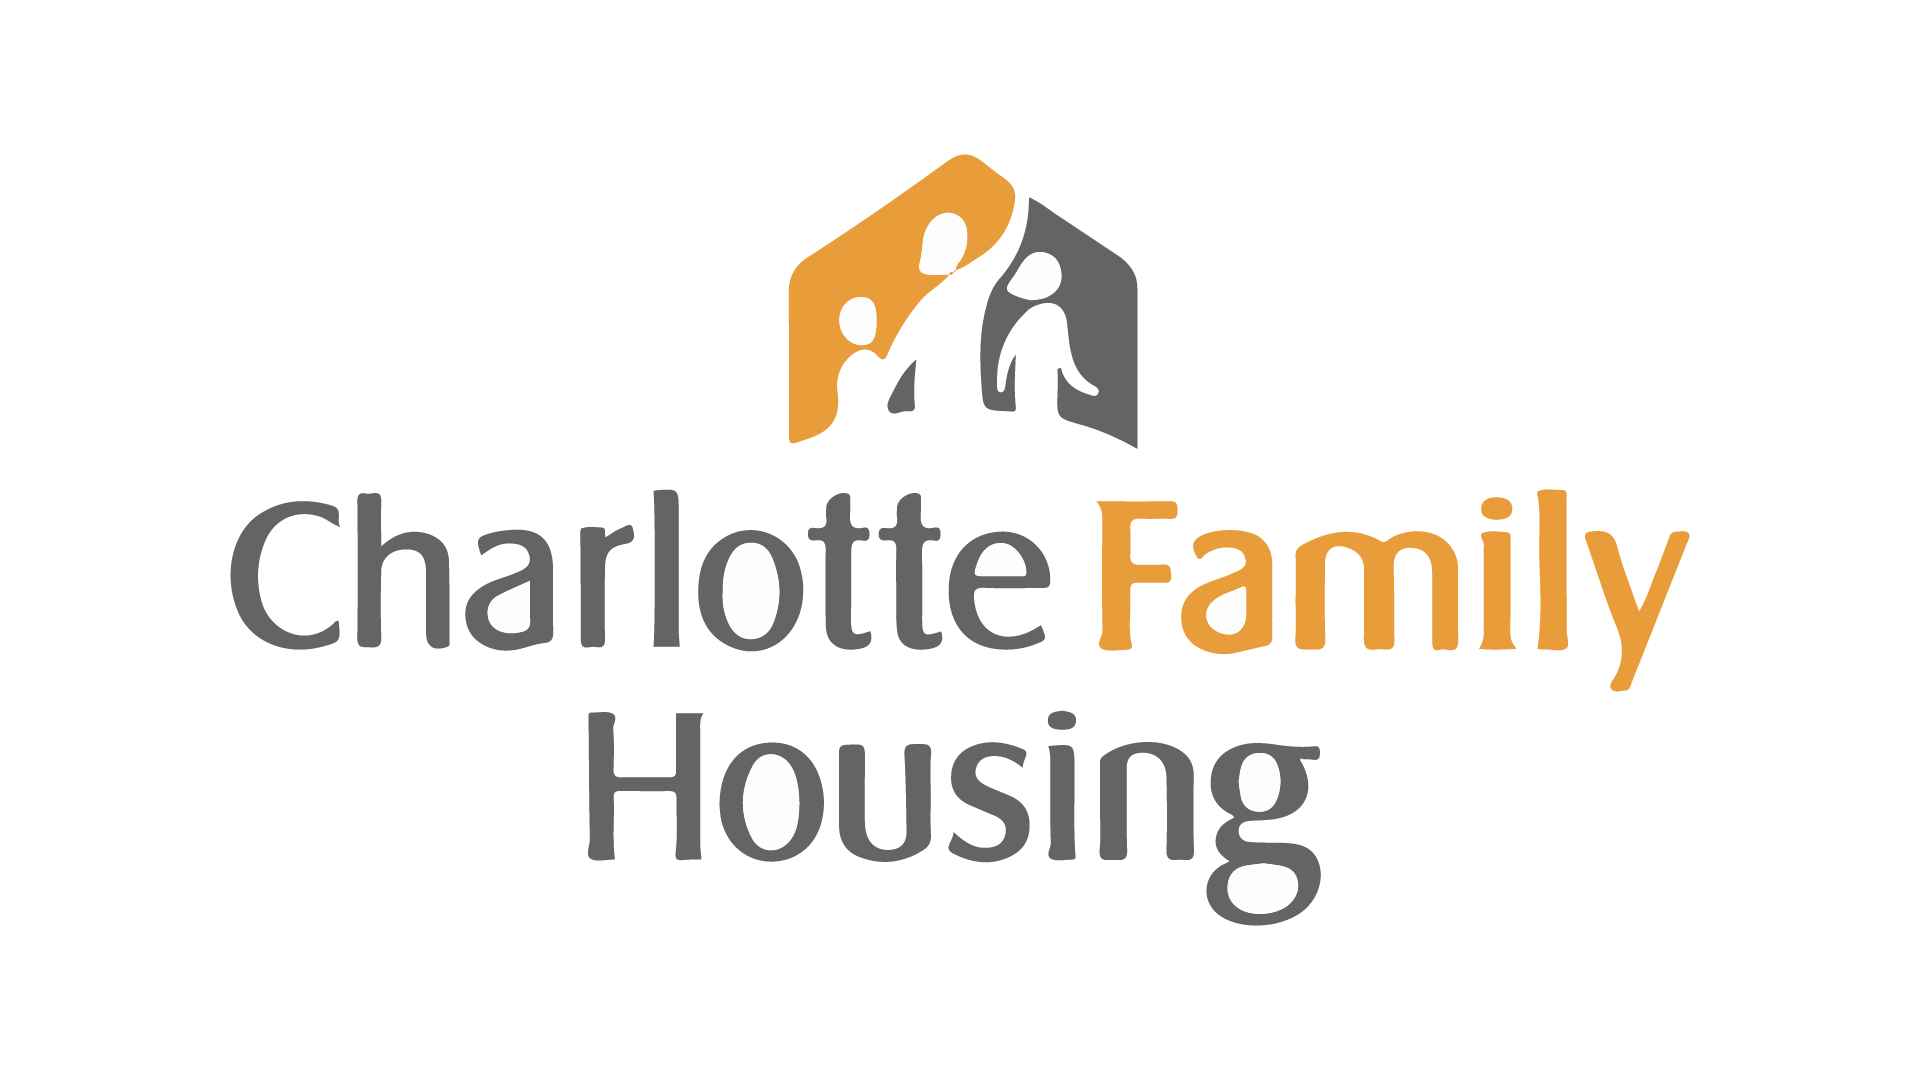 Charlotte-Family-Housing.png